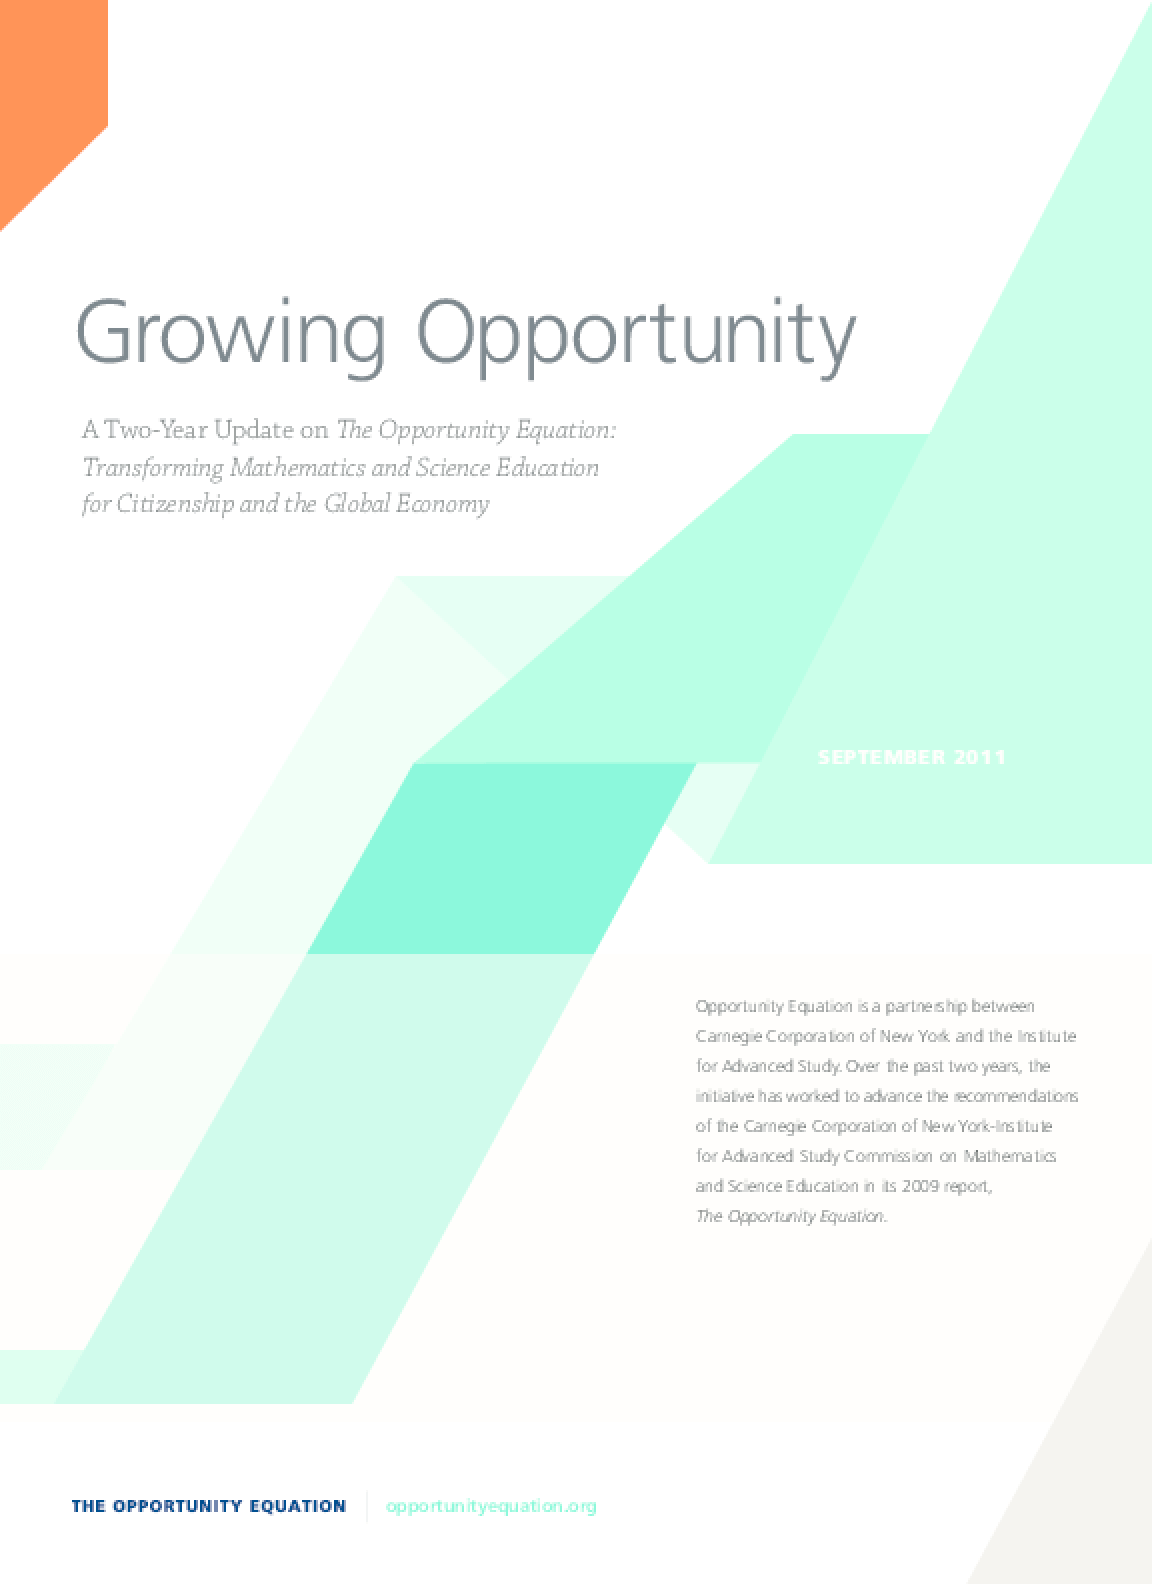 Growing Opportunity: A Two-Year Update on The Opportunity Equation: Transforming Mathematics and Science Education for Citizenship and the Global Economy